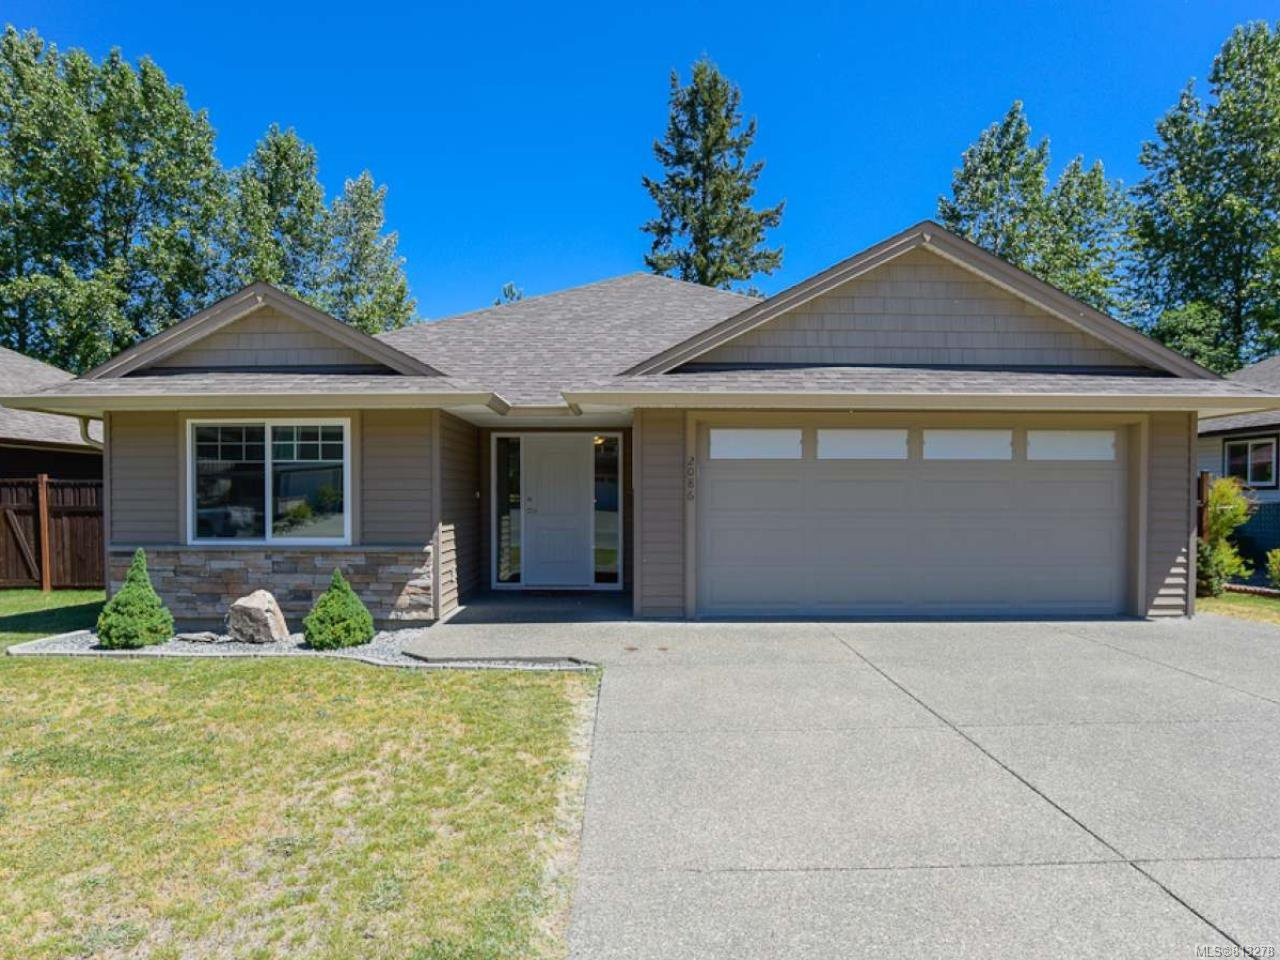 Main Photo: 2086 Lambert Dr in COURTENAY: CV Courtenay City House for sale (Comox Valley)  : MLS®# 813278